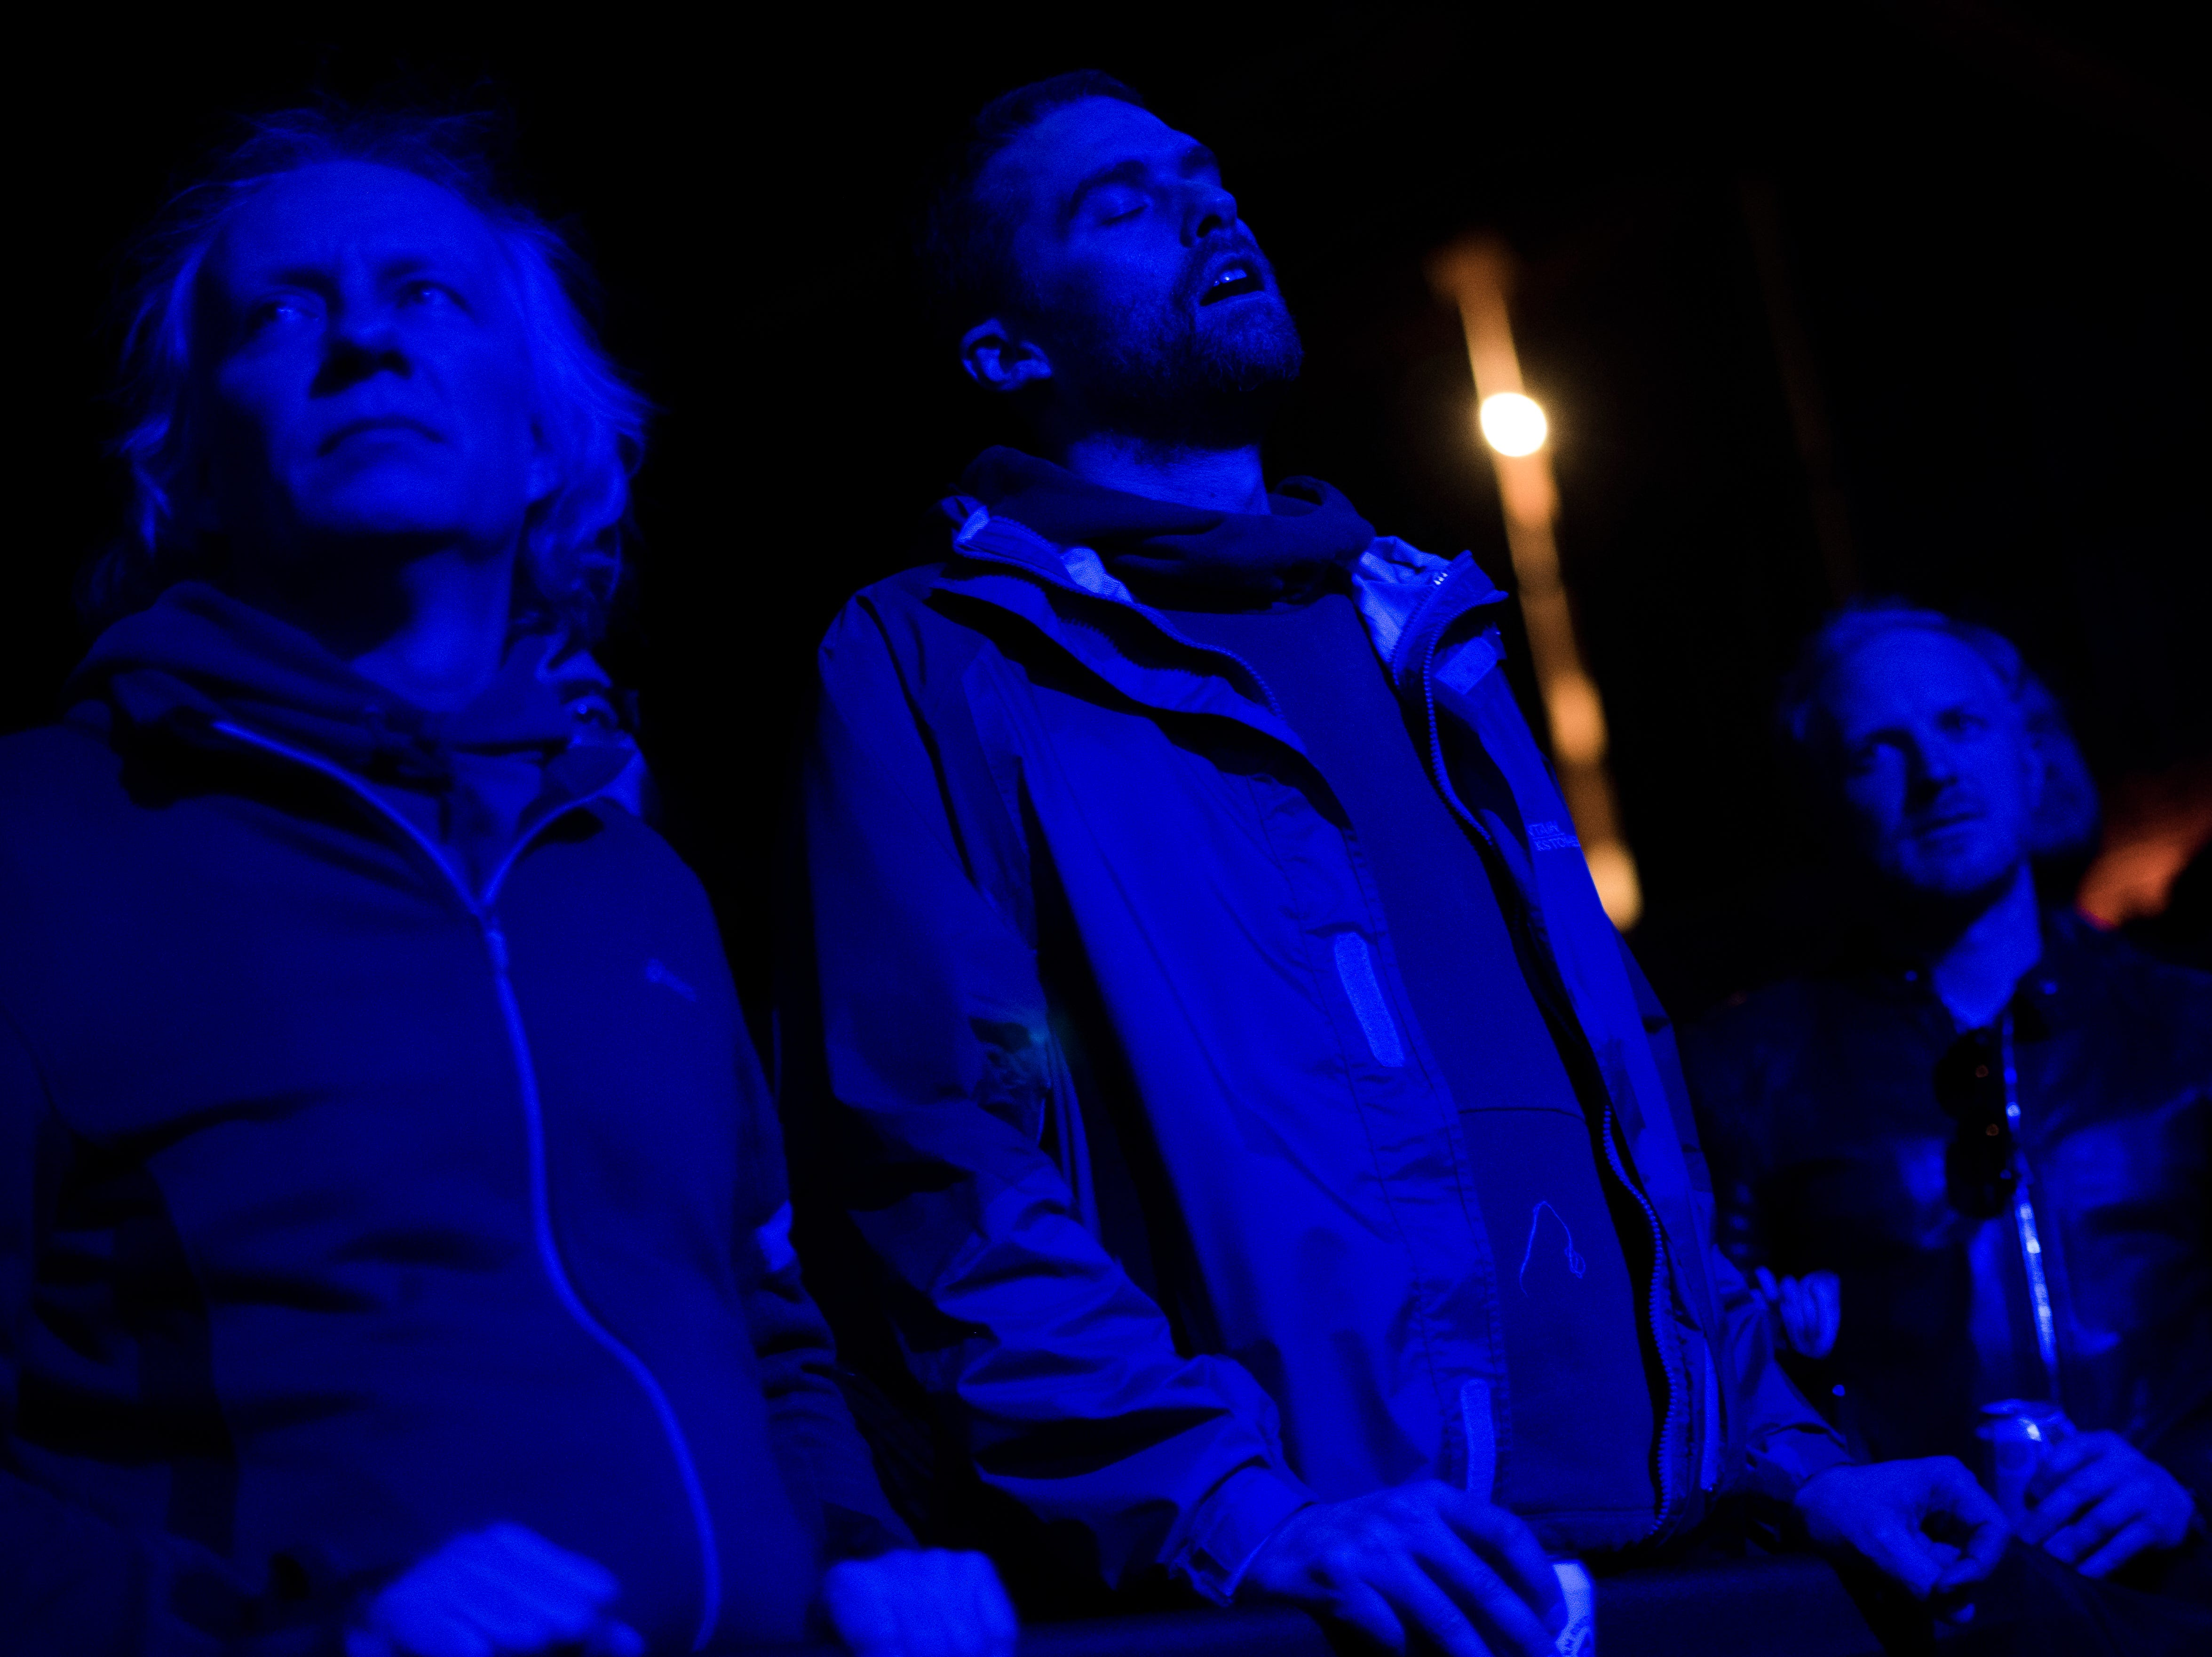 Fans listen as Kukangendai performs at the Mill & Mine during Big Ears Festival 2019 in Knoxville, Tennessee on Thursday, March 21, 2019.